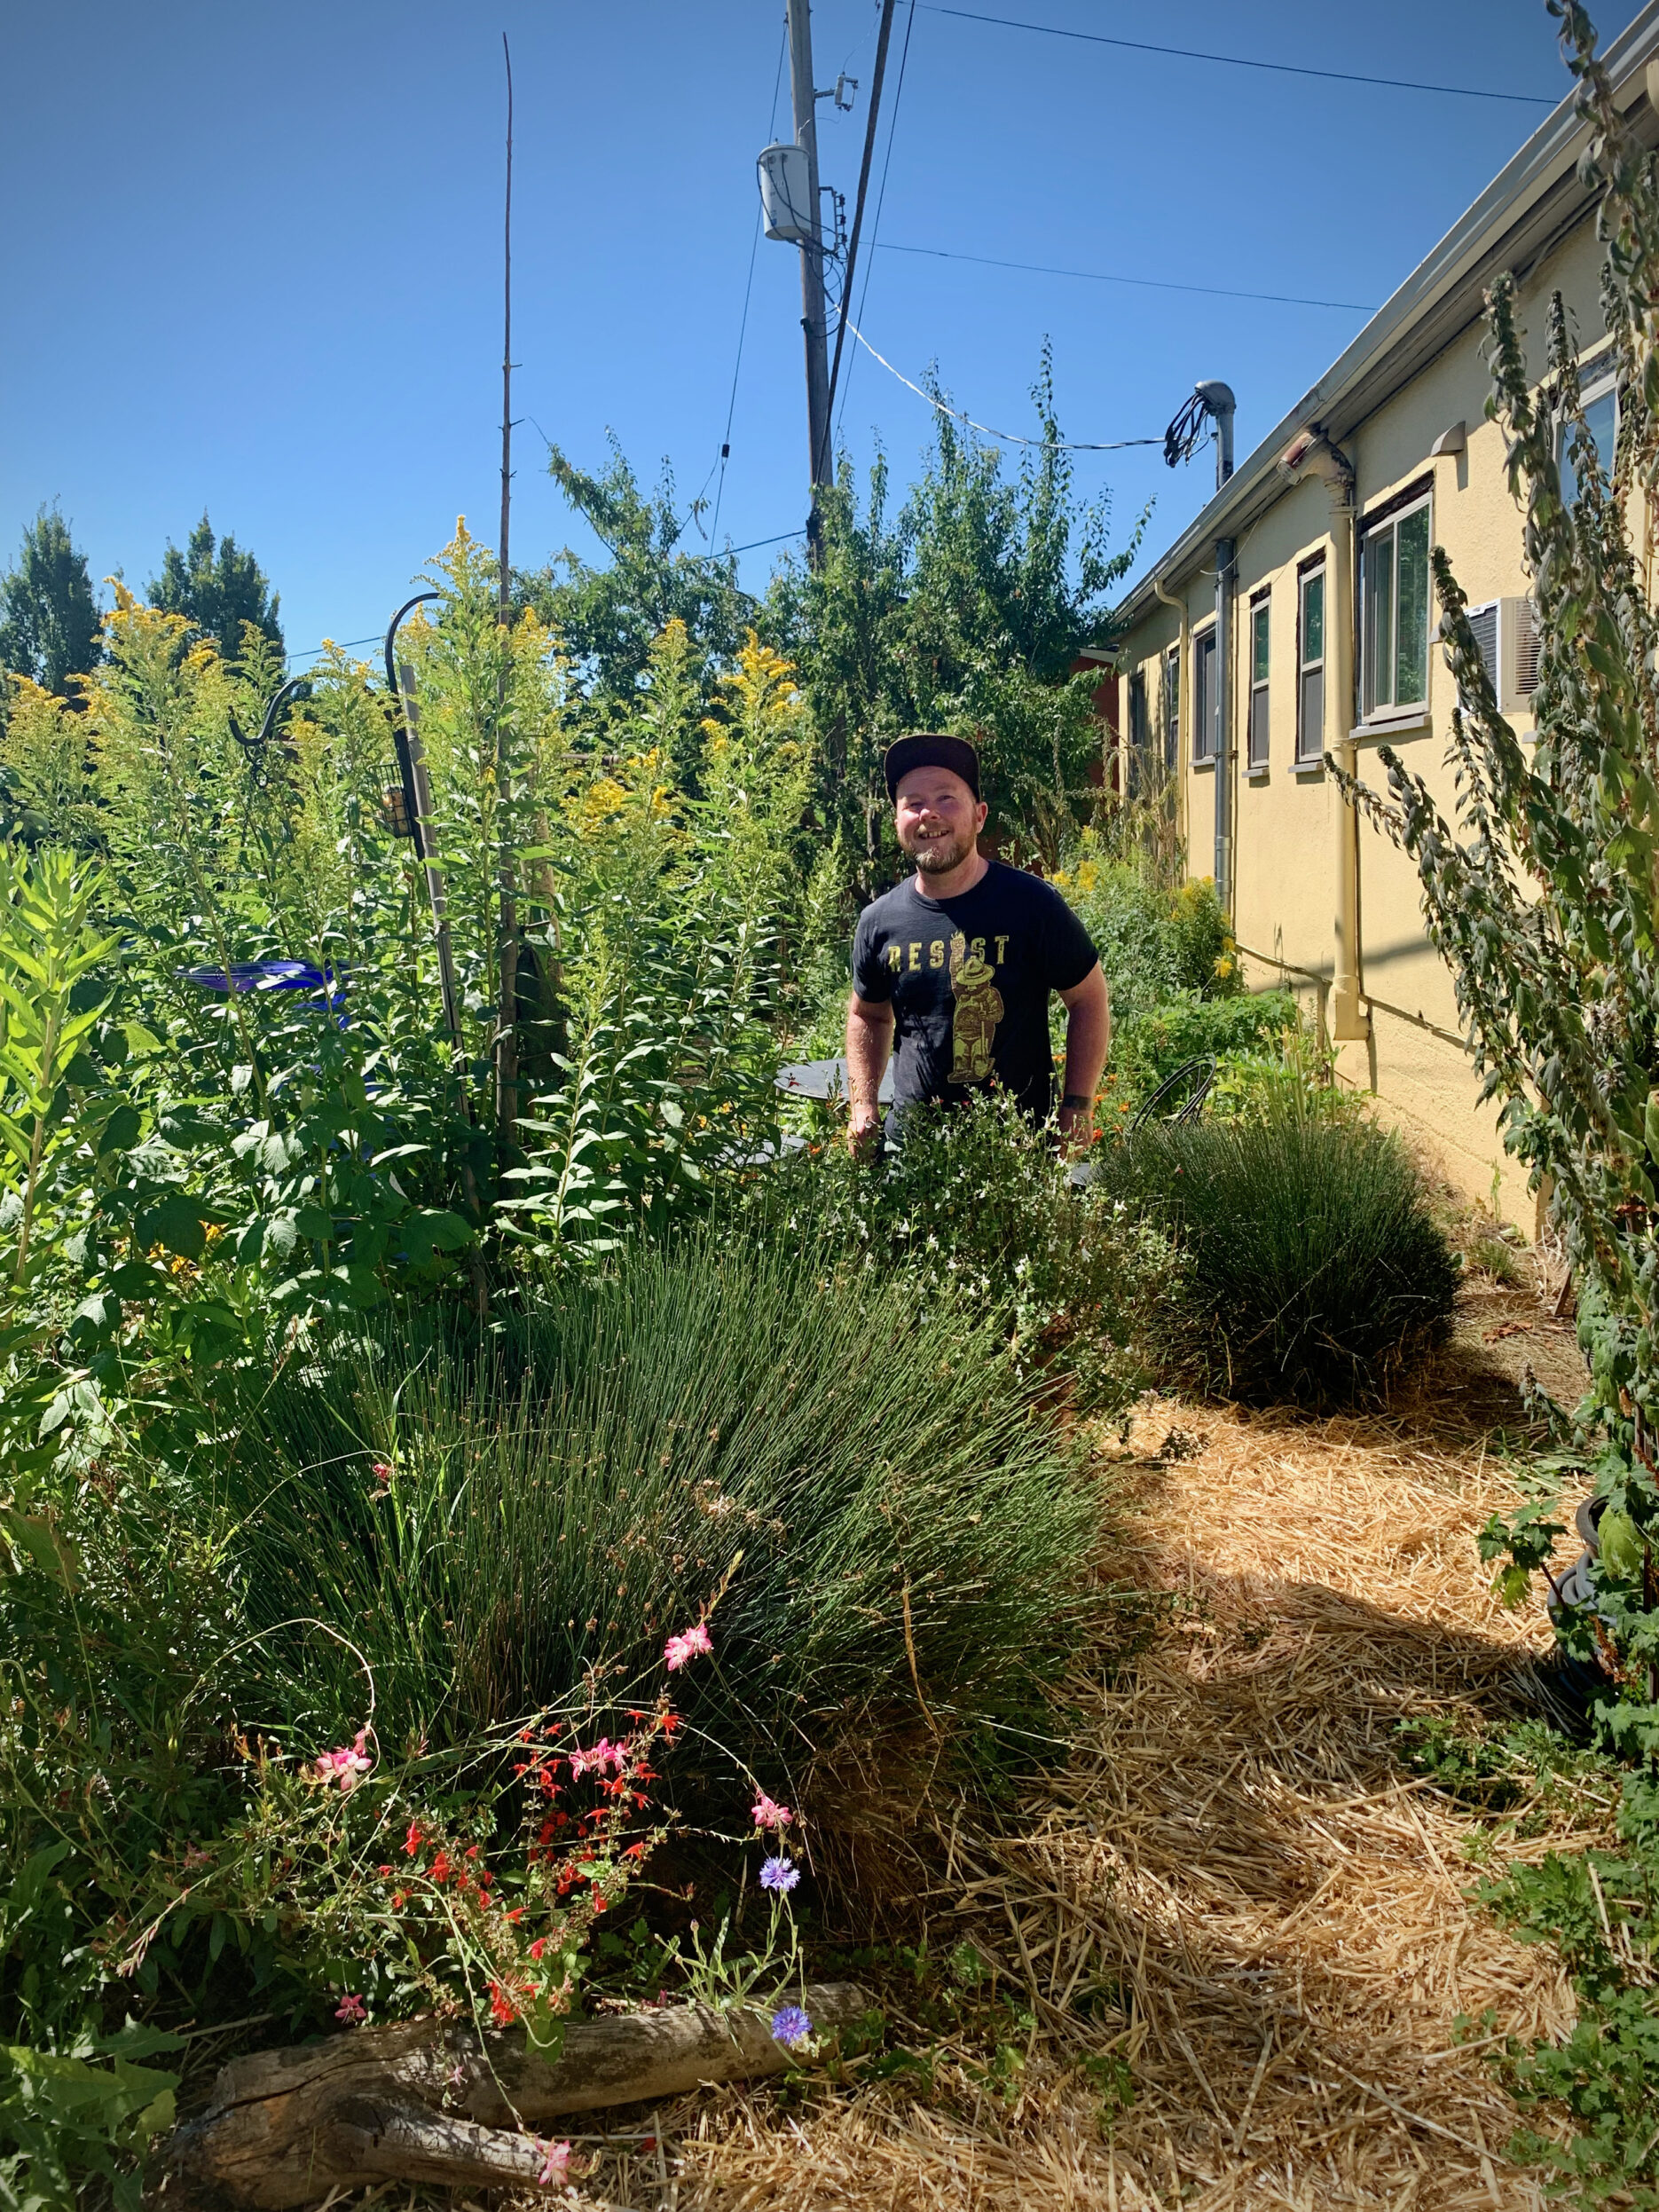 Athen standing with giant goldenrod and salvia plants in backyard community garden